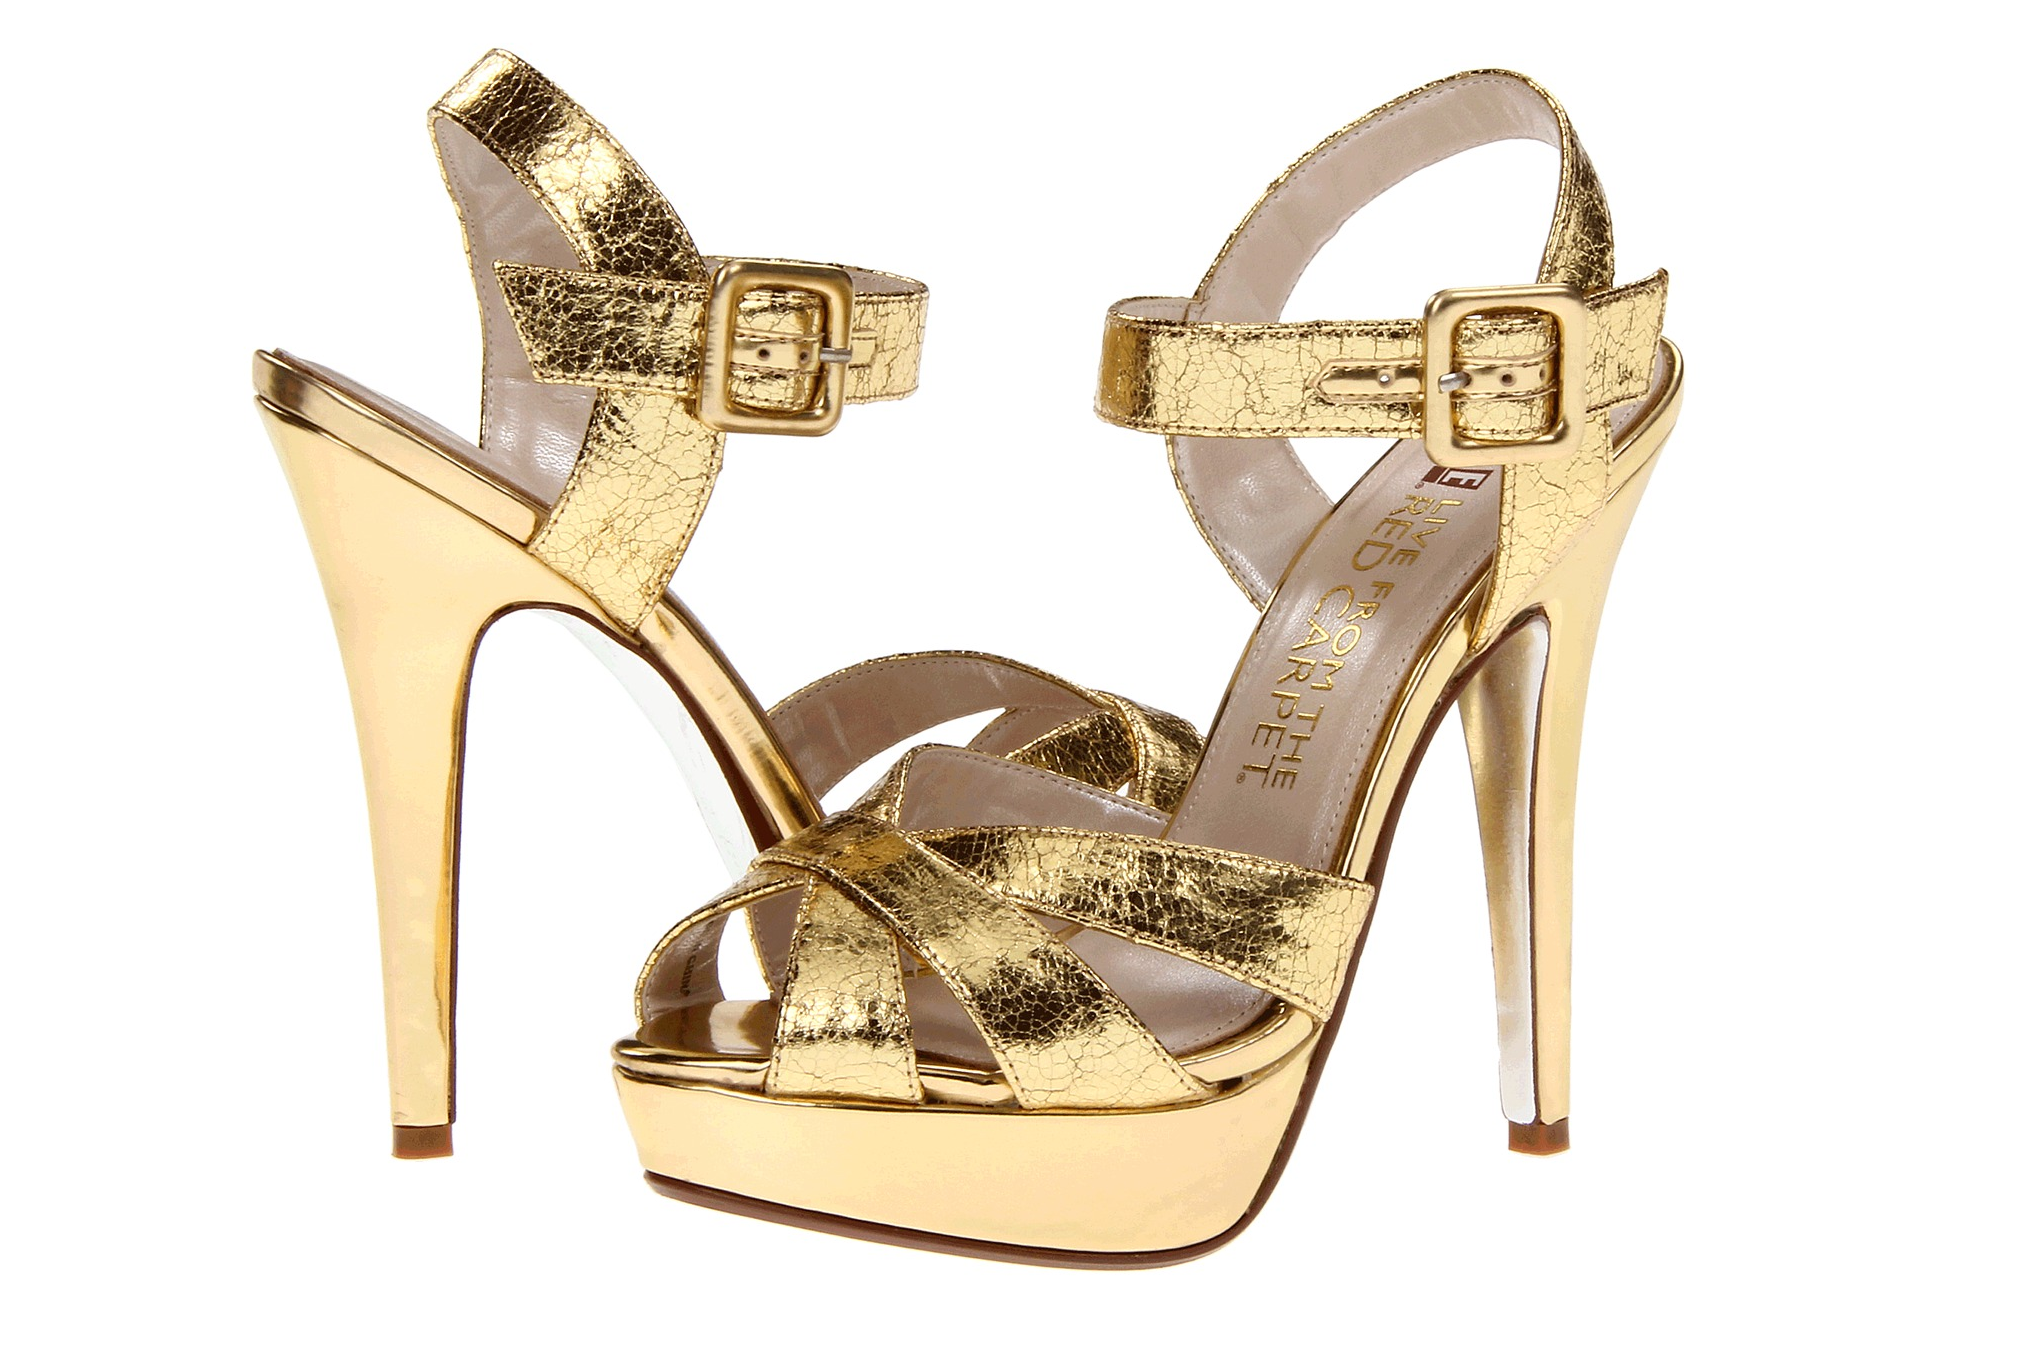 Glamorous gold wedding shoes E Live from the Red Carpet ...